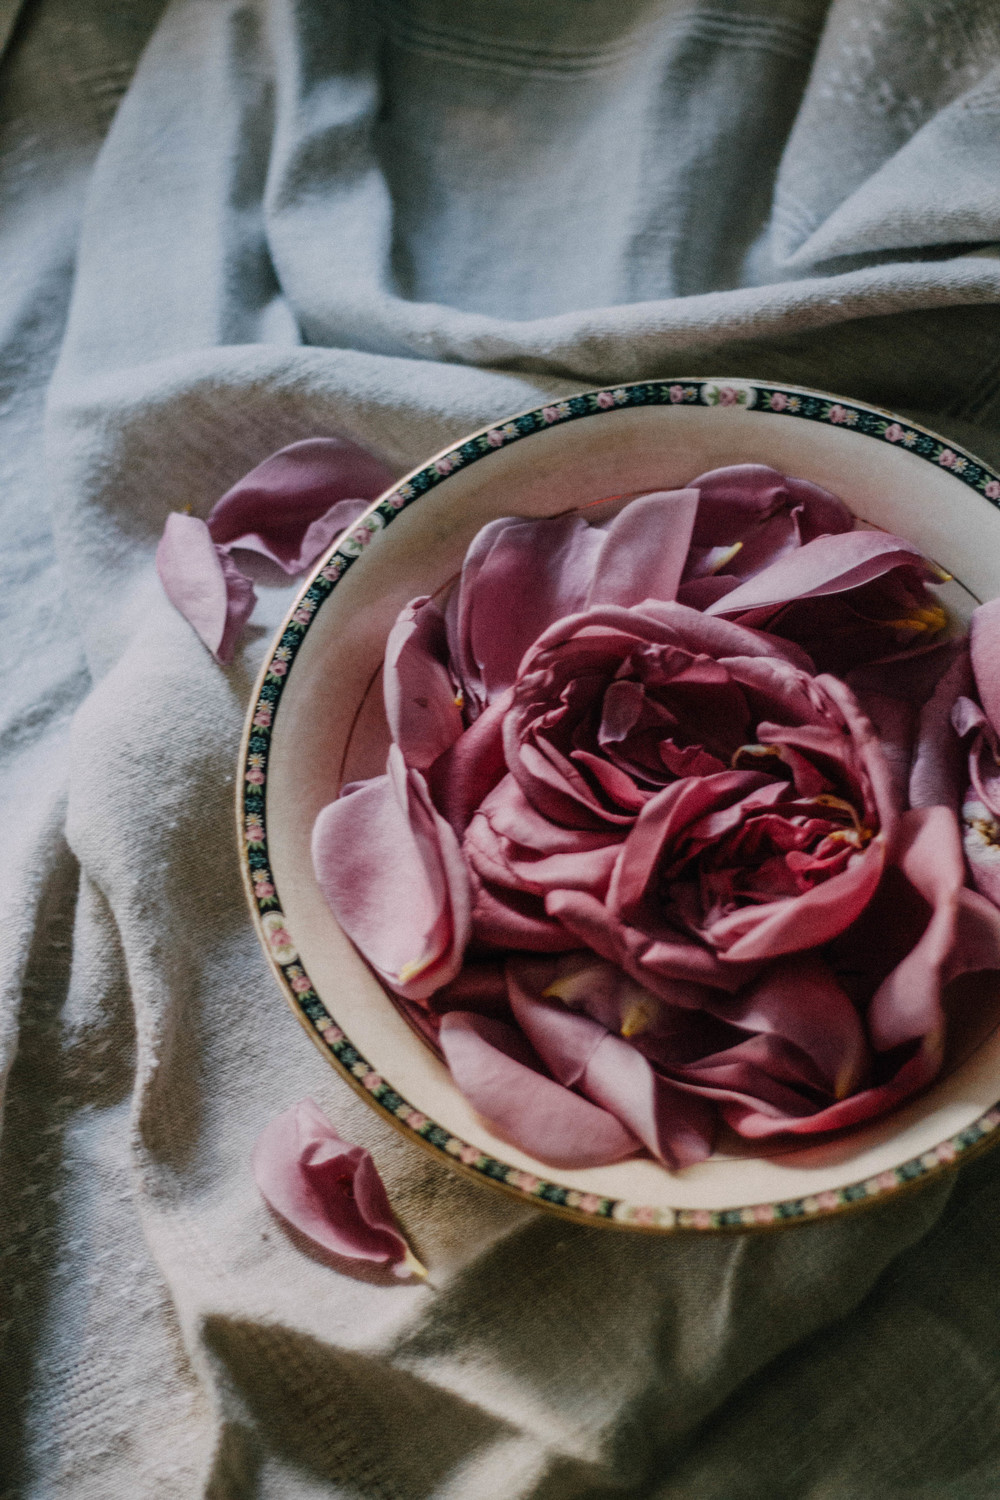 diy rose water tutorial | via: bekuh b.